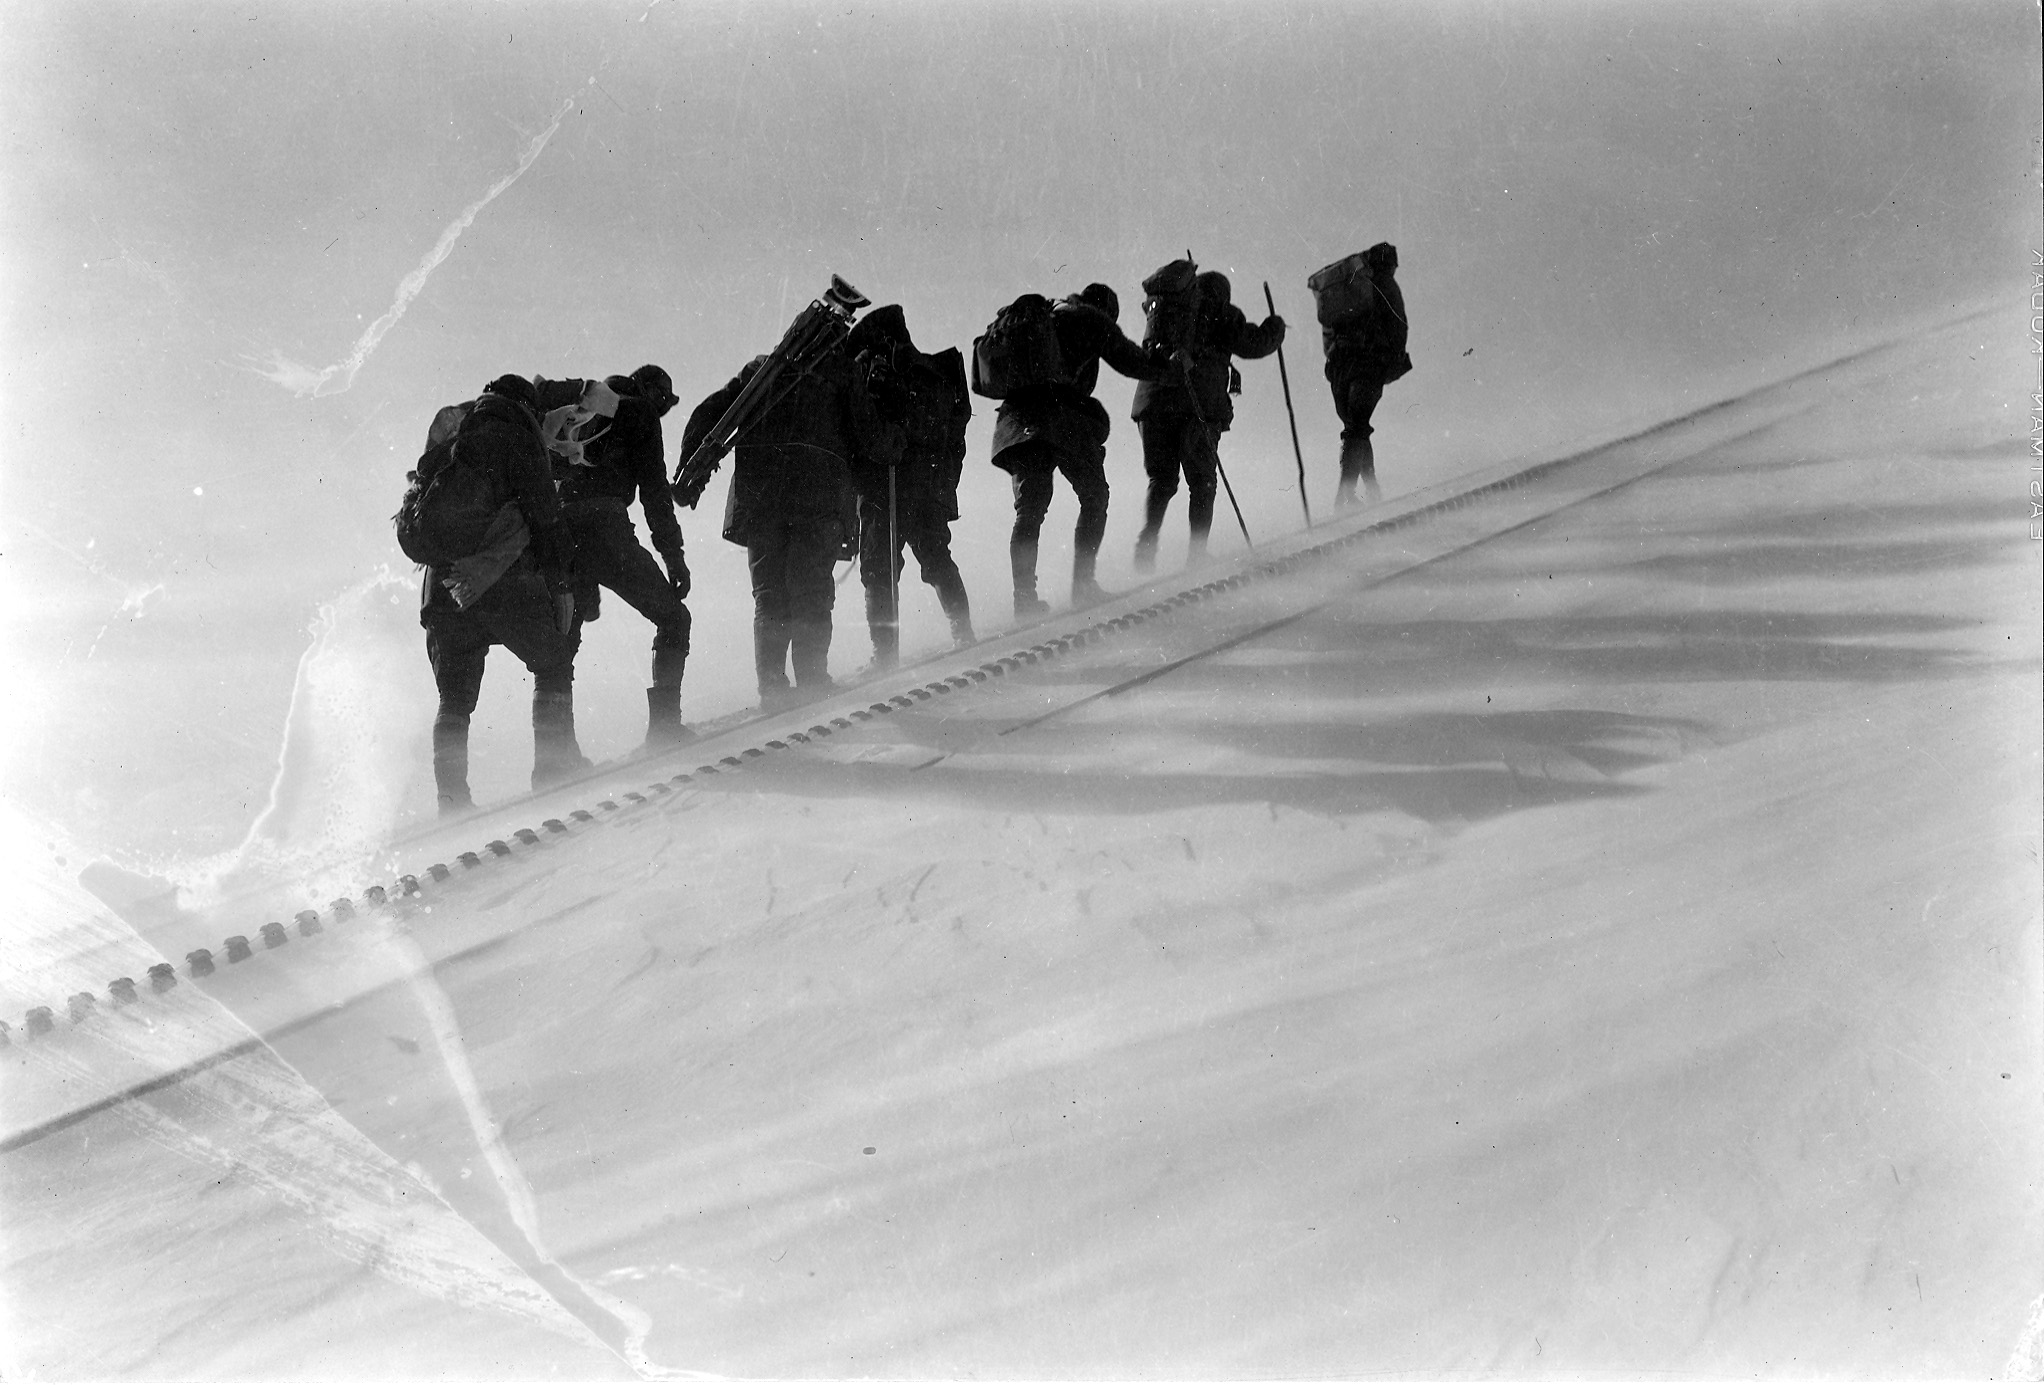 An archival photo shows the conditions the AdAmAn Club faces throughout their journey.